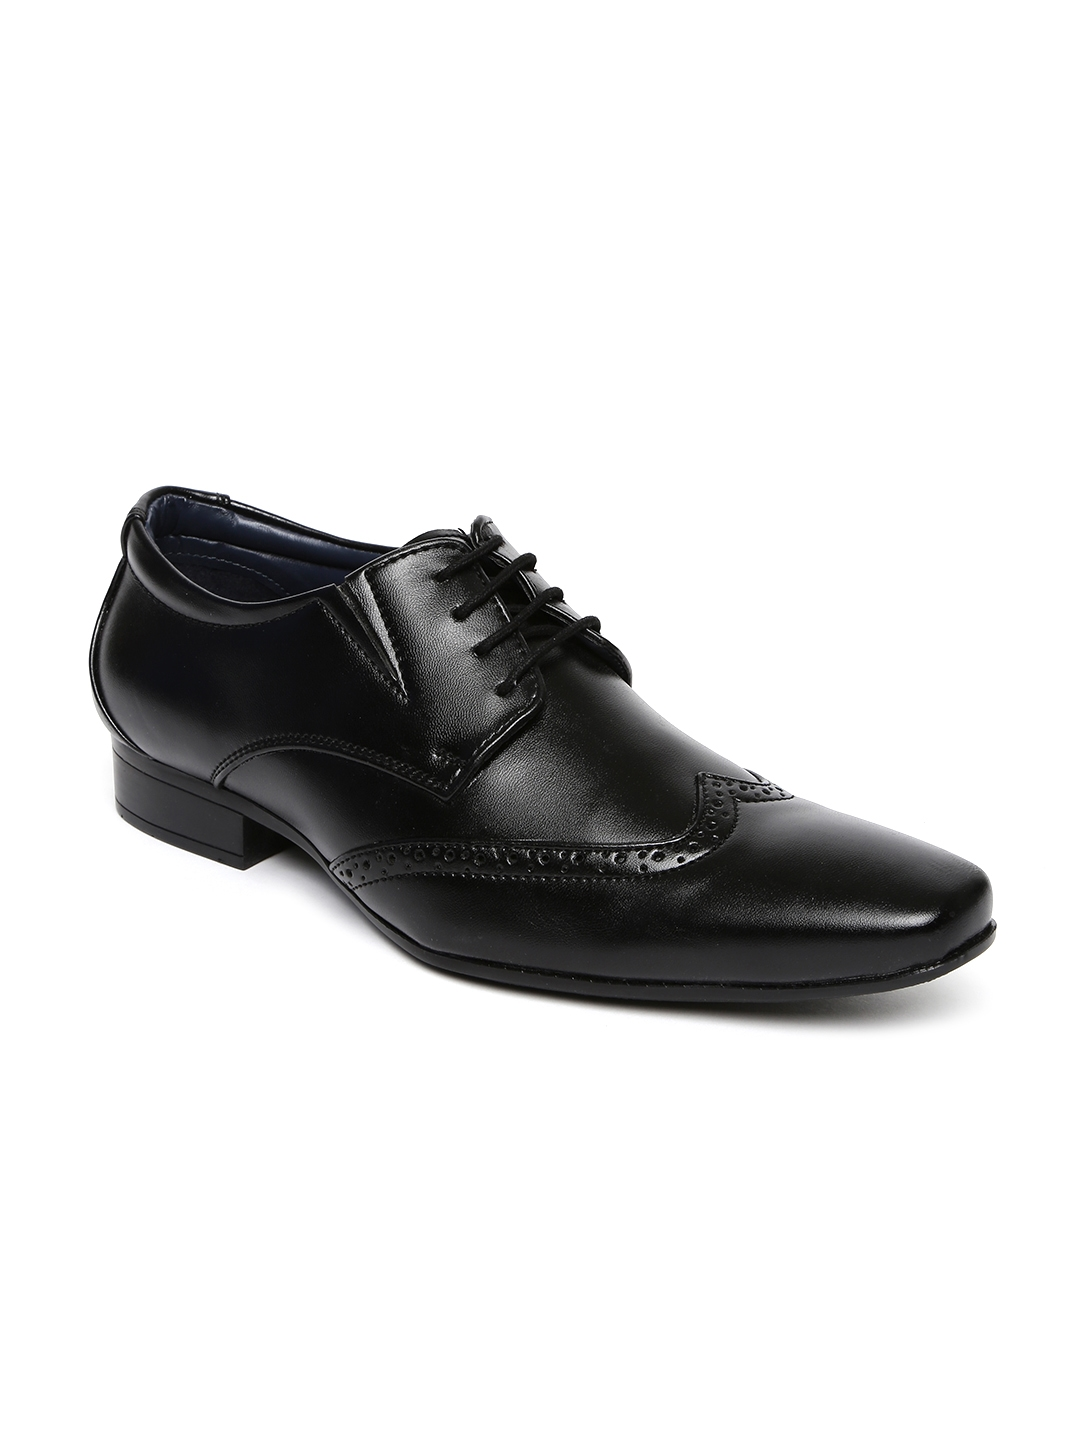 buy bata men black square toed leather brogue shoes formal shoes